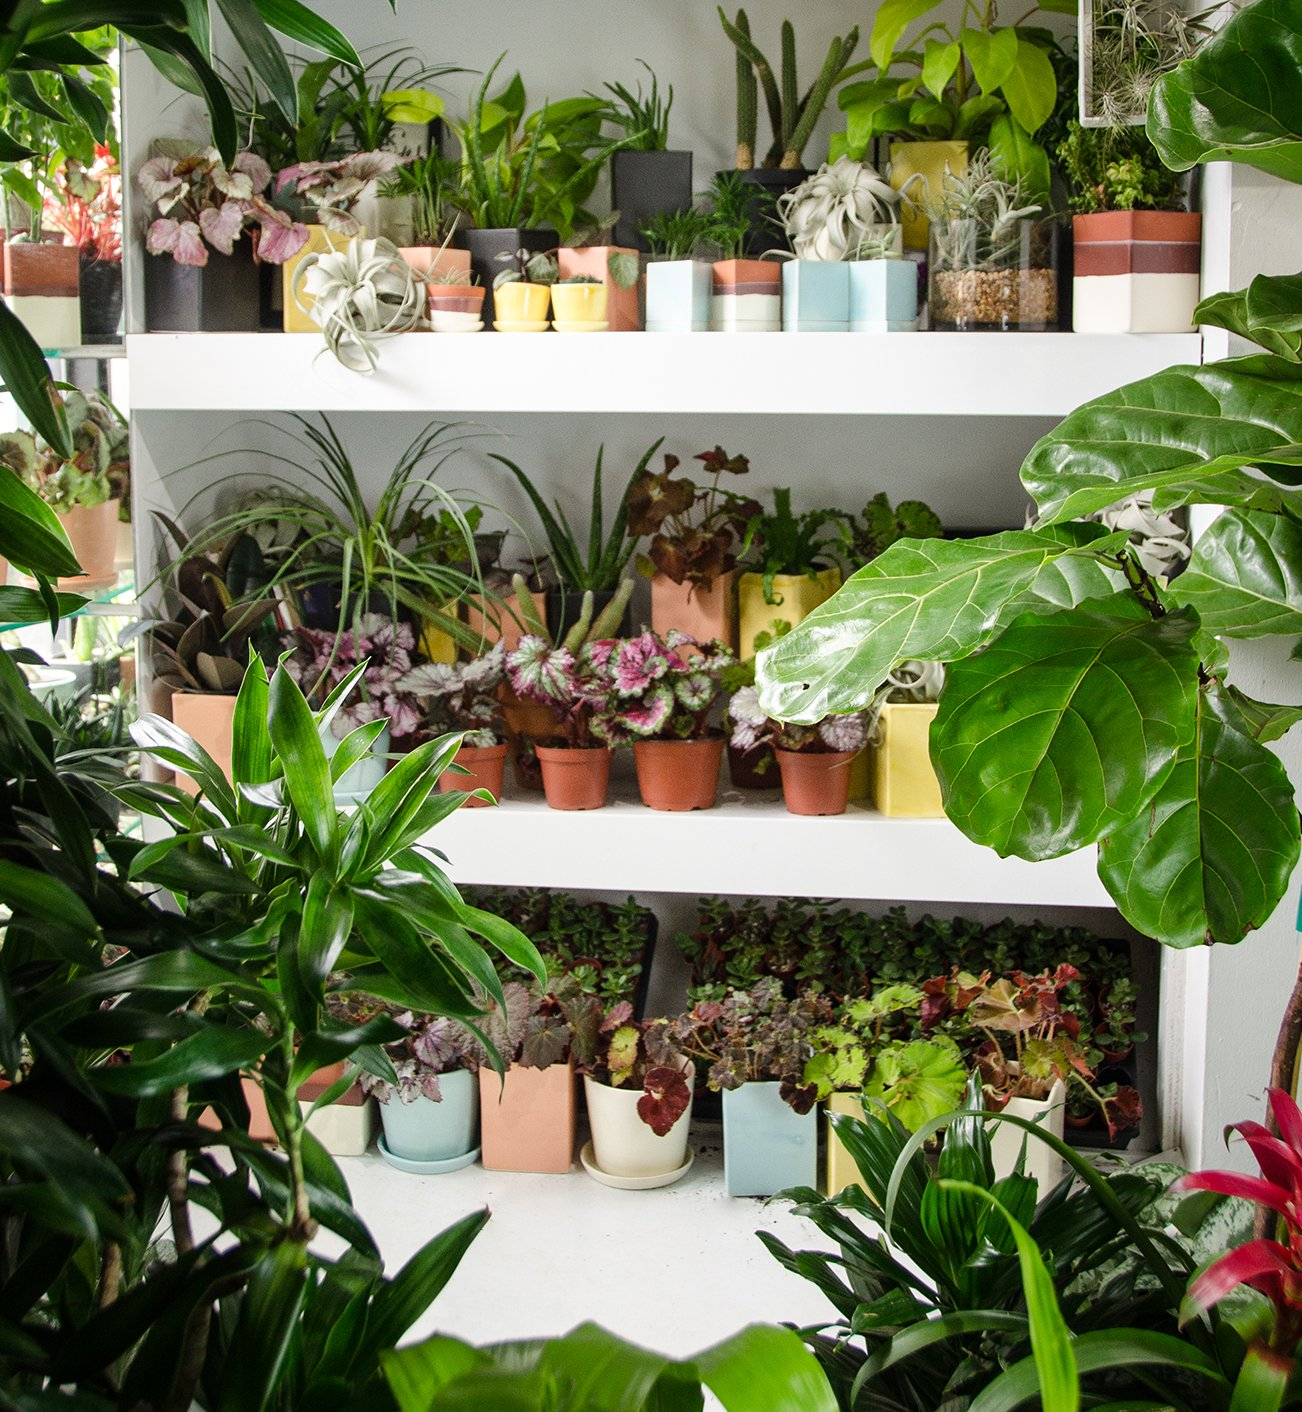 Indoor Potted Plants Delivered to Your Door – The Sill on colorful house plants, non-toxic house plants, small house plants, soothing house plants, robust house plants, weather proof house plants, hypoallergenic house plants, fragrant house plants, lightweight house plants, compact house plants, organic house plants, portable house plants, rugged house plants, elegant house plants, night blooming house plants, refreshing house plants, cool looking house plants, inexpensive house plants, strong house plants, easy to maintain house plants,